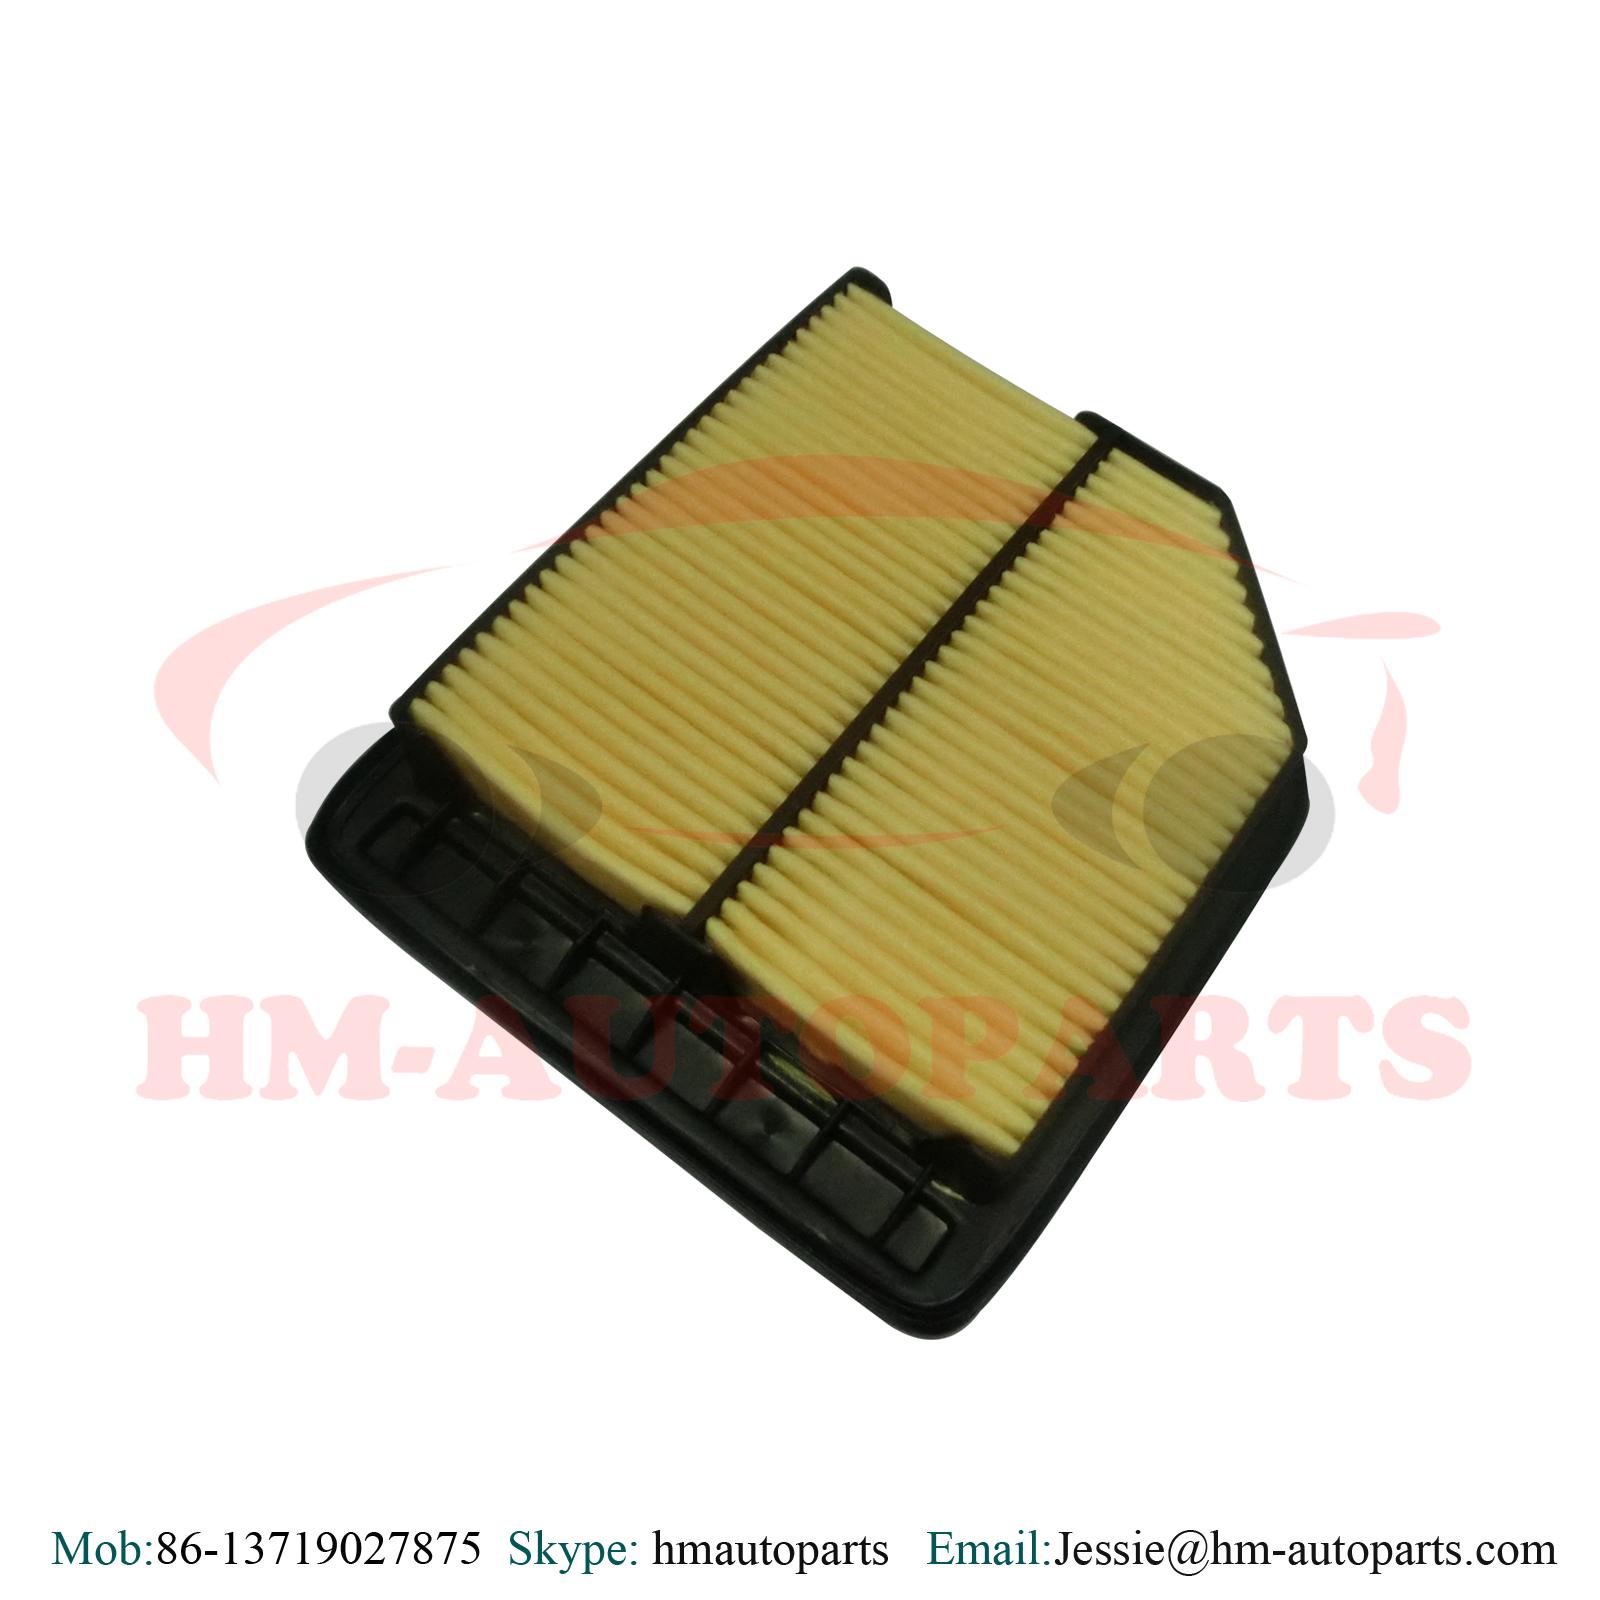 Brand New Engine Air Filter for 2006-2011 Honda Civic 1.8 L4 17220-RNA-A00